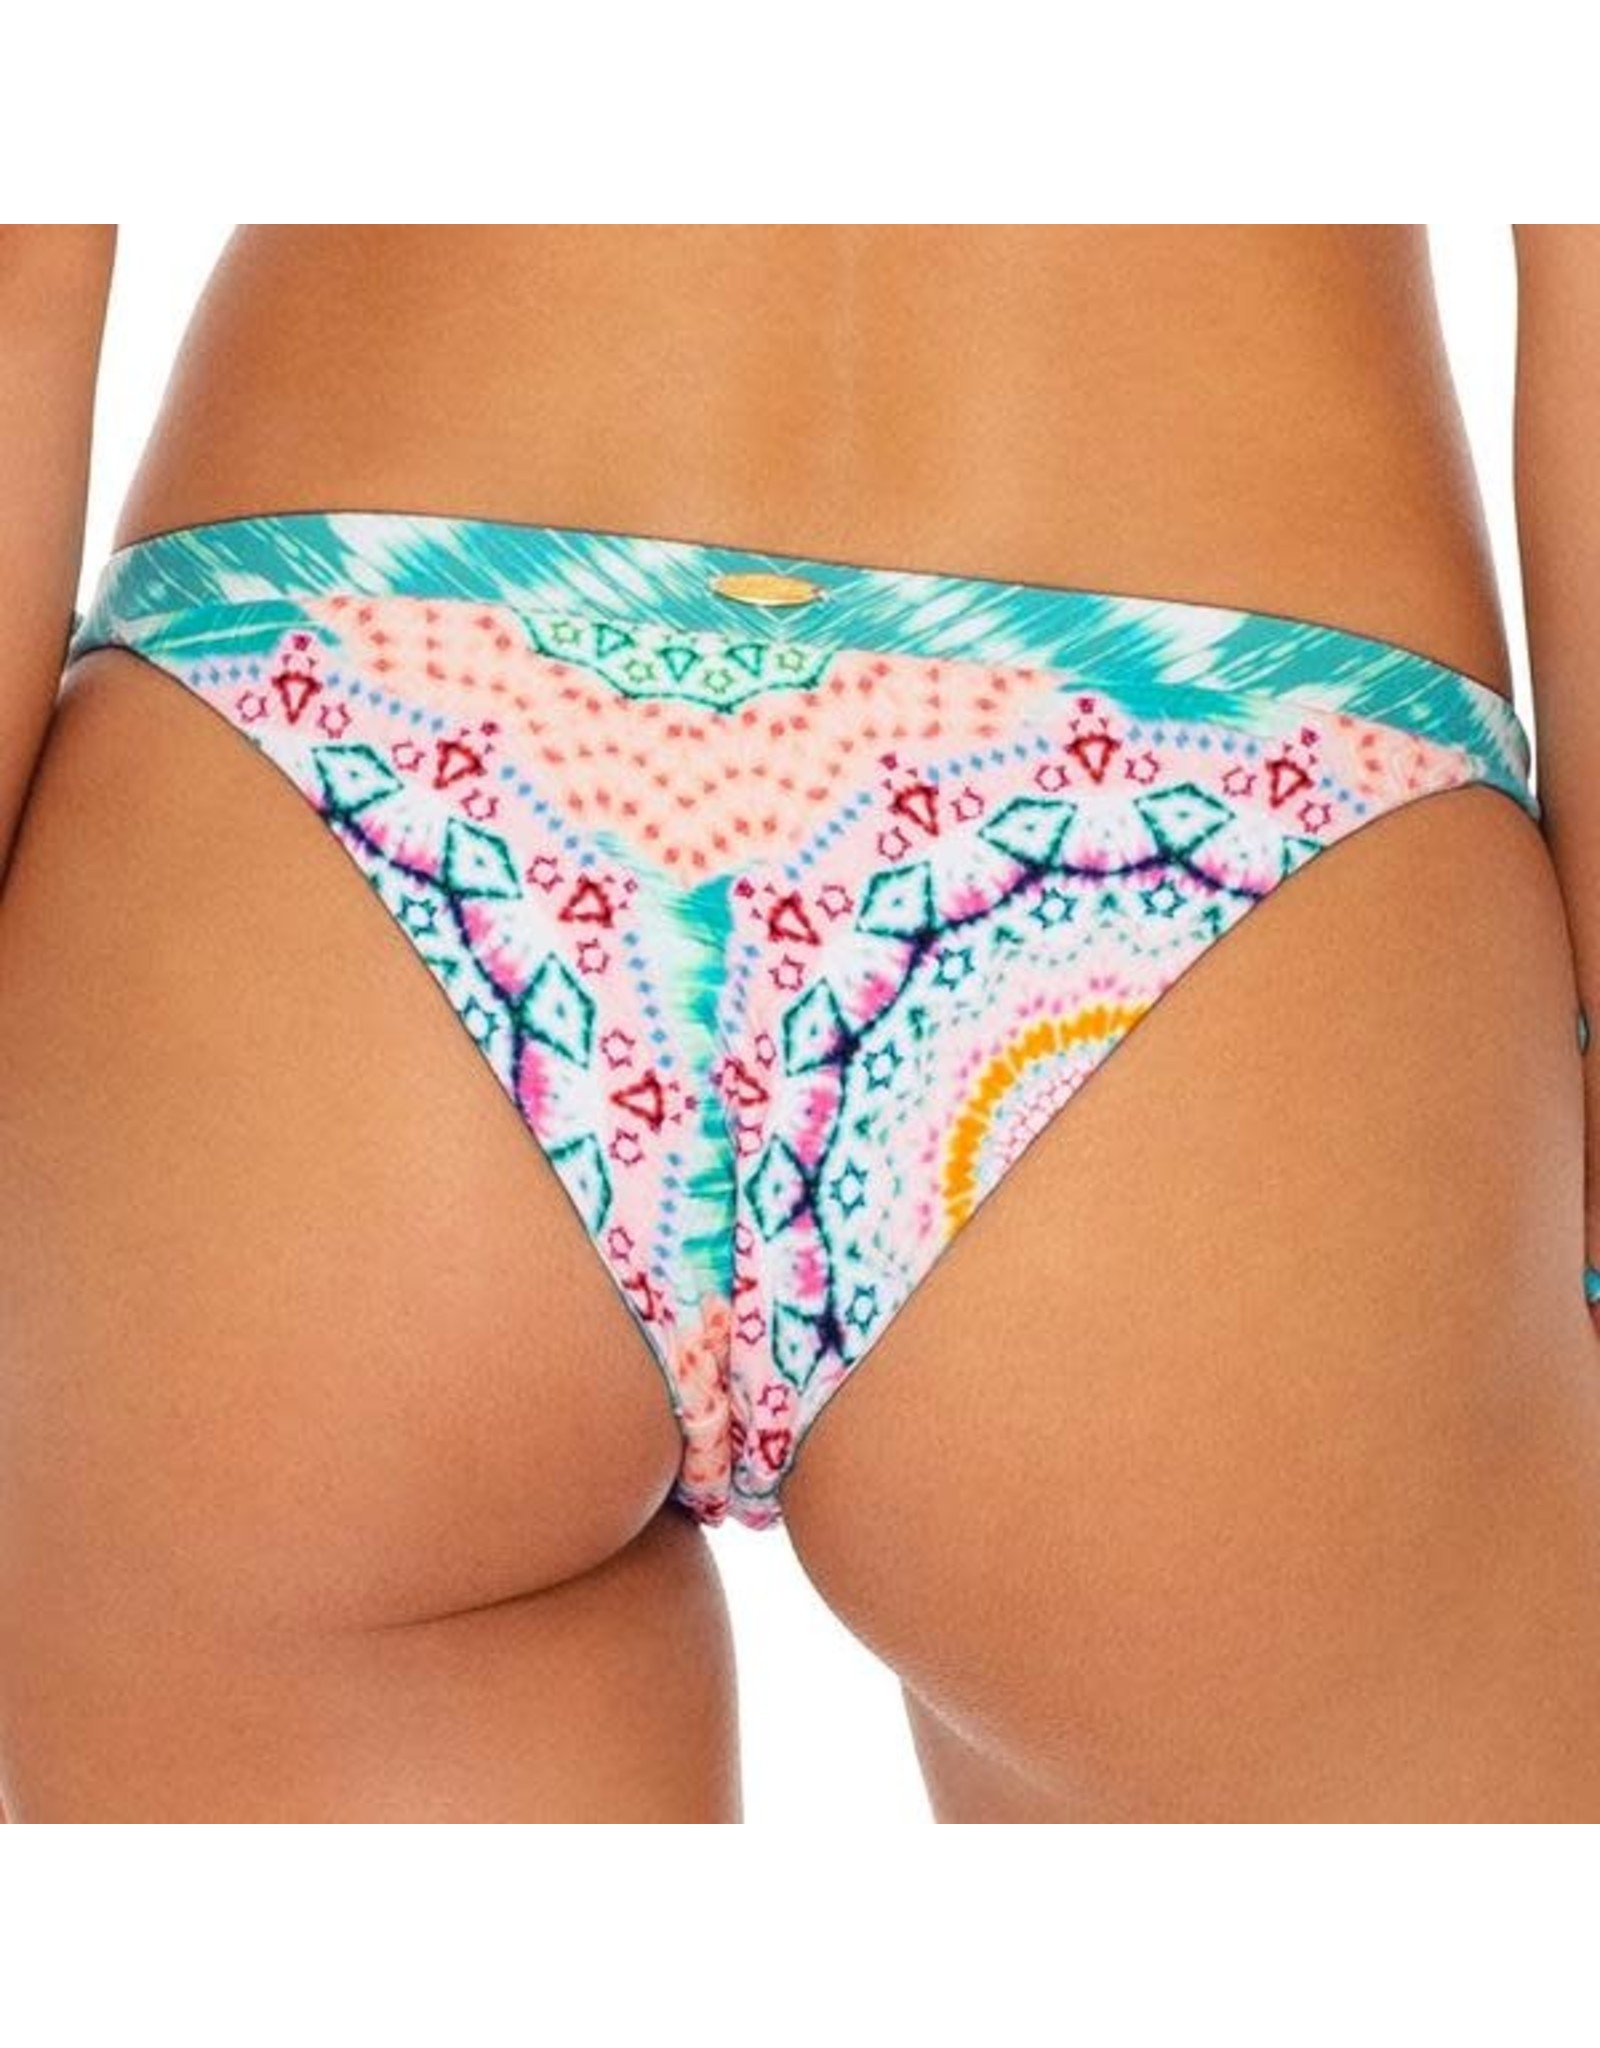 Luli Fama Caribbean Kiss Moderate Bottom